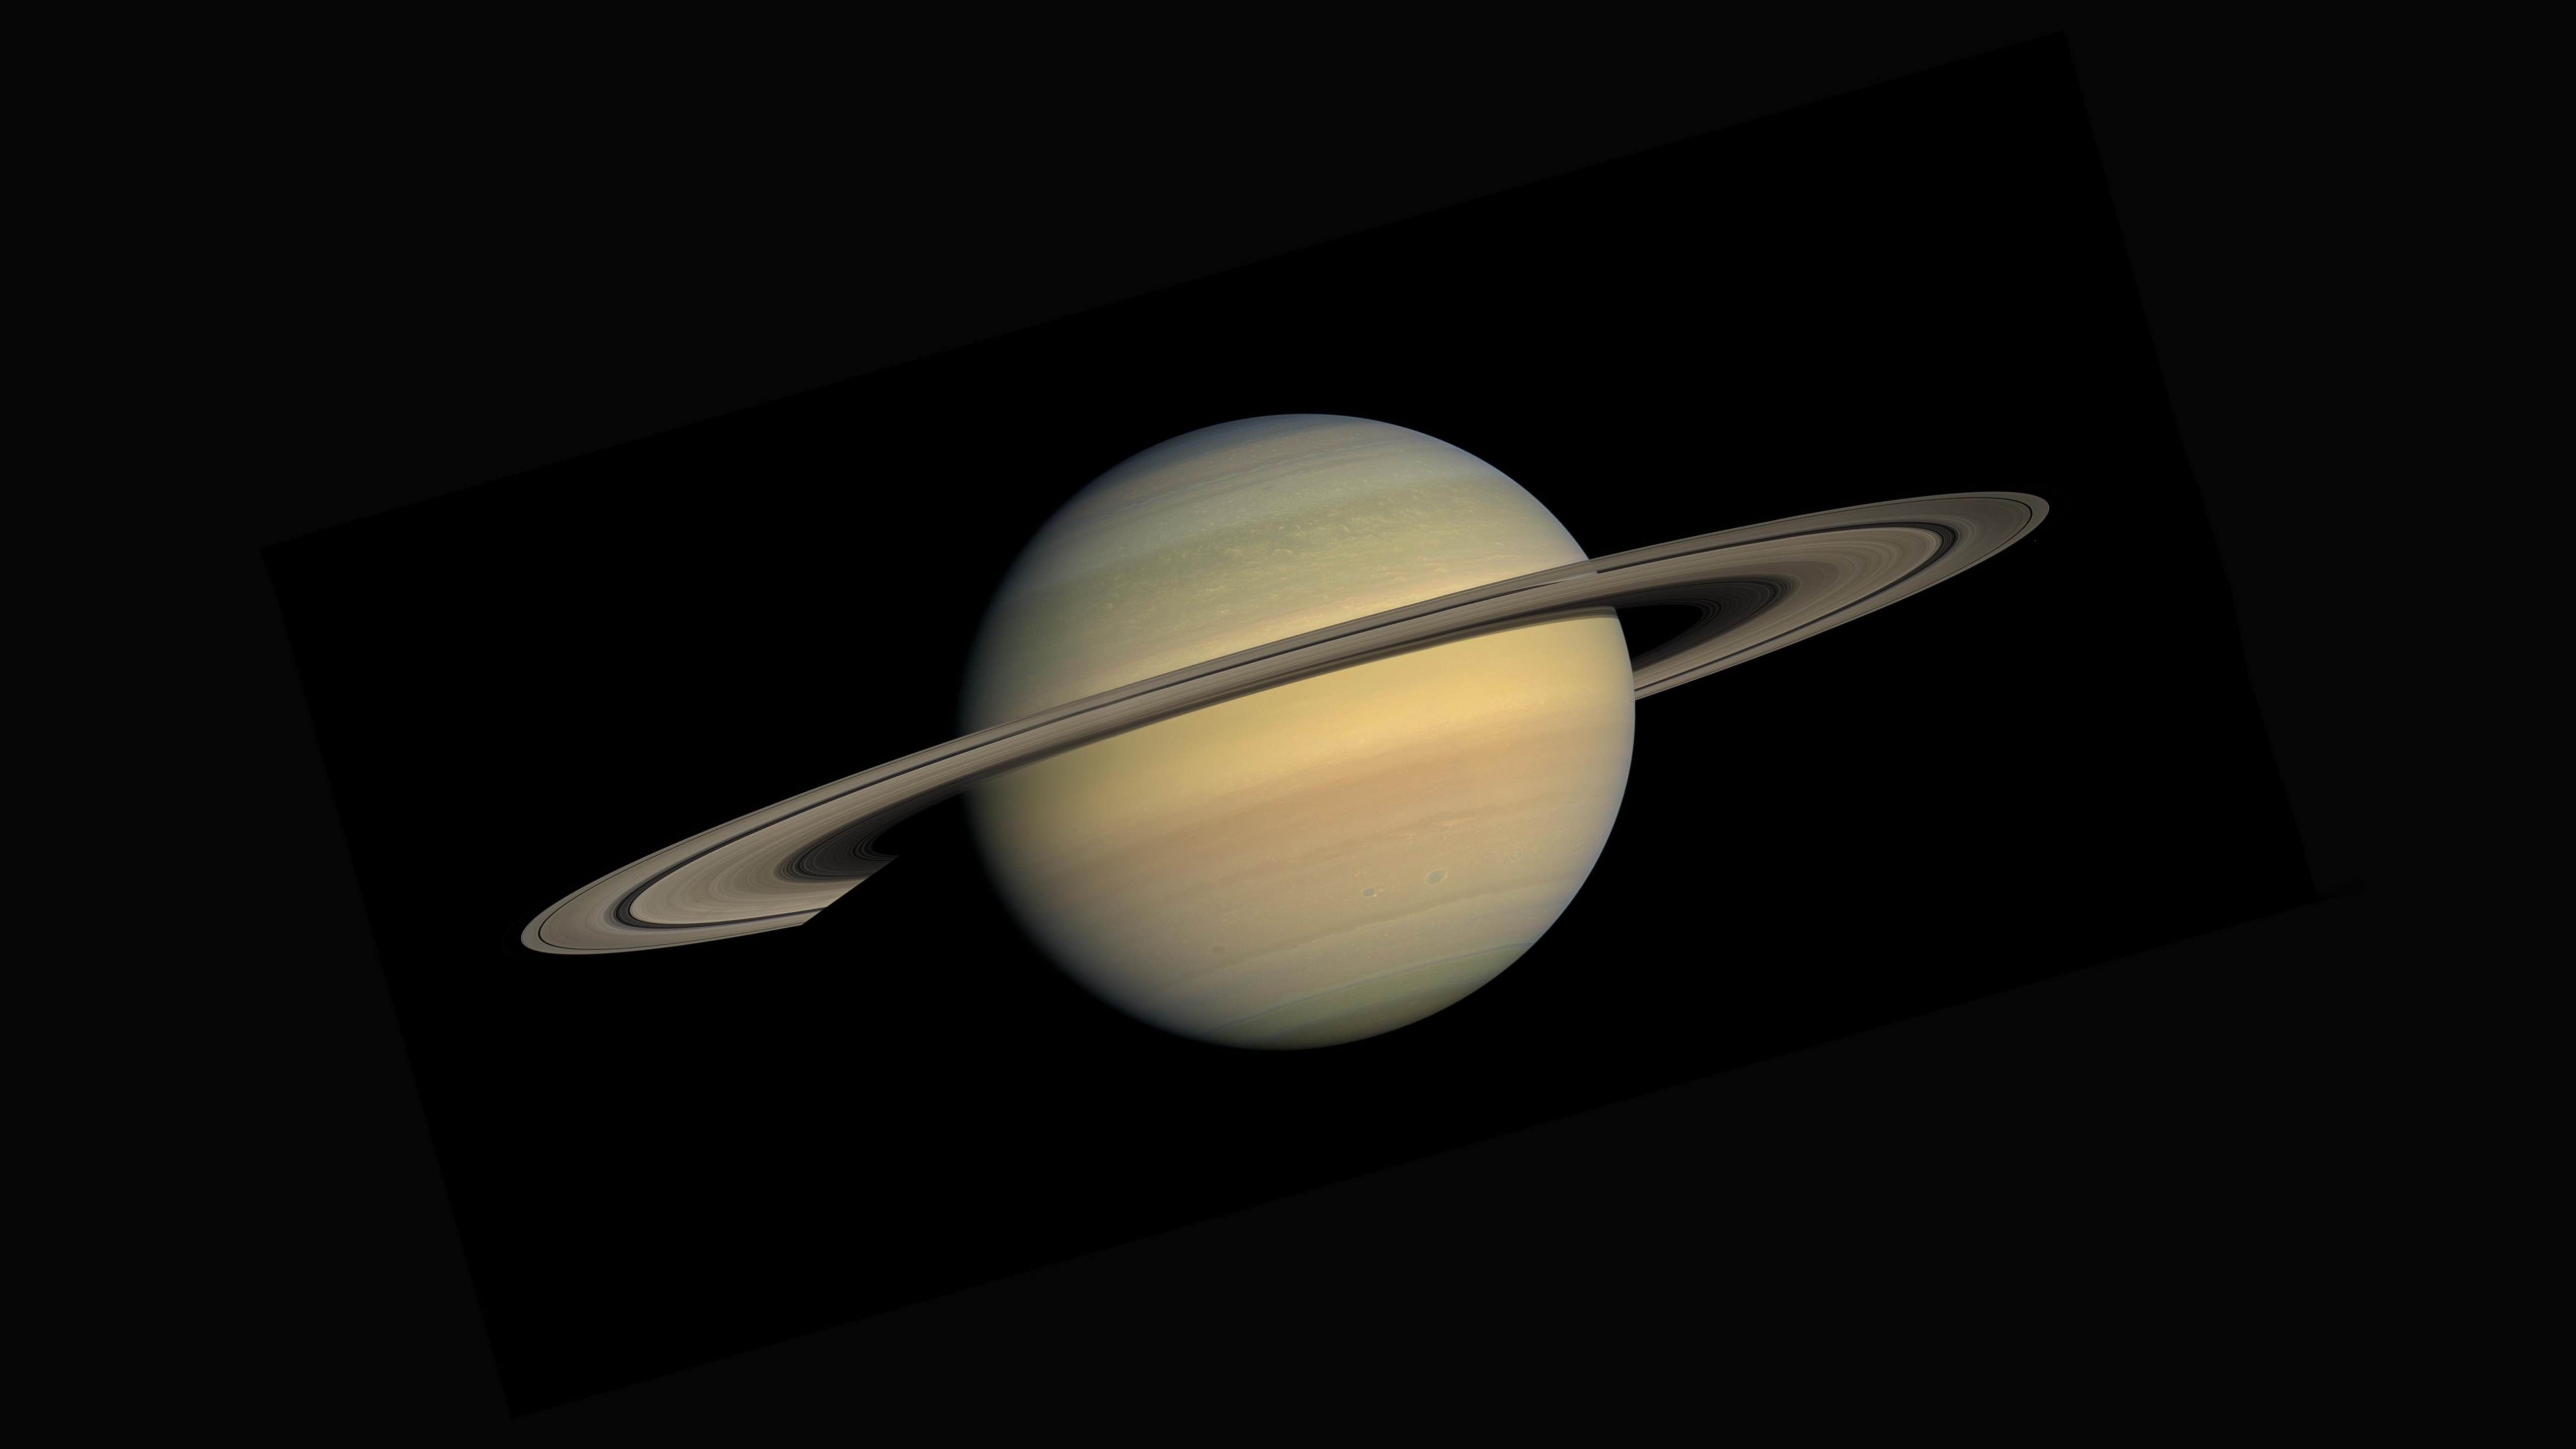 saturn as seen from the cassini huygens space research mission nasa 4k 1629255910 - Saturn As Seen From The Cassini Huygens Space Research Mission Nasa 4k - Saturn As Seen From The Cassini Huygens Space Research Mission Nasa wallpapers, Saturn As Seen From The Cassini Huygens Space Research Mission Nasa 4k